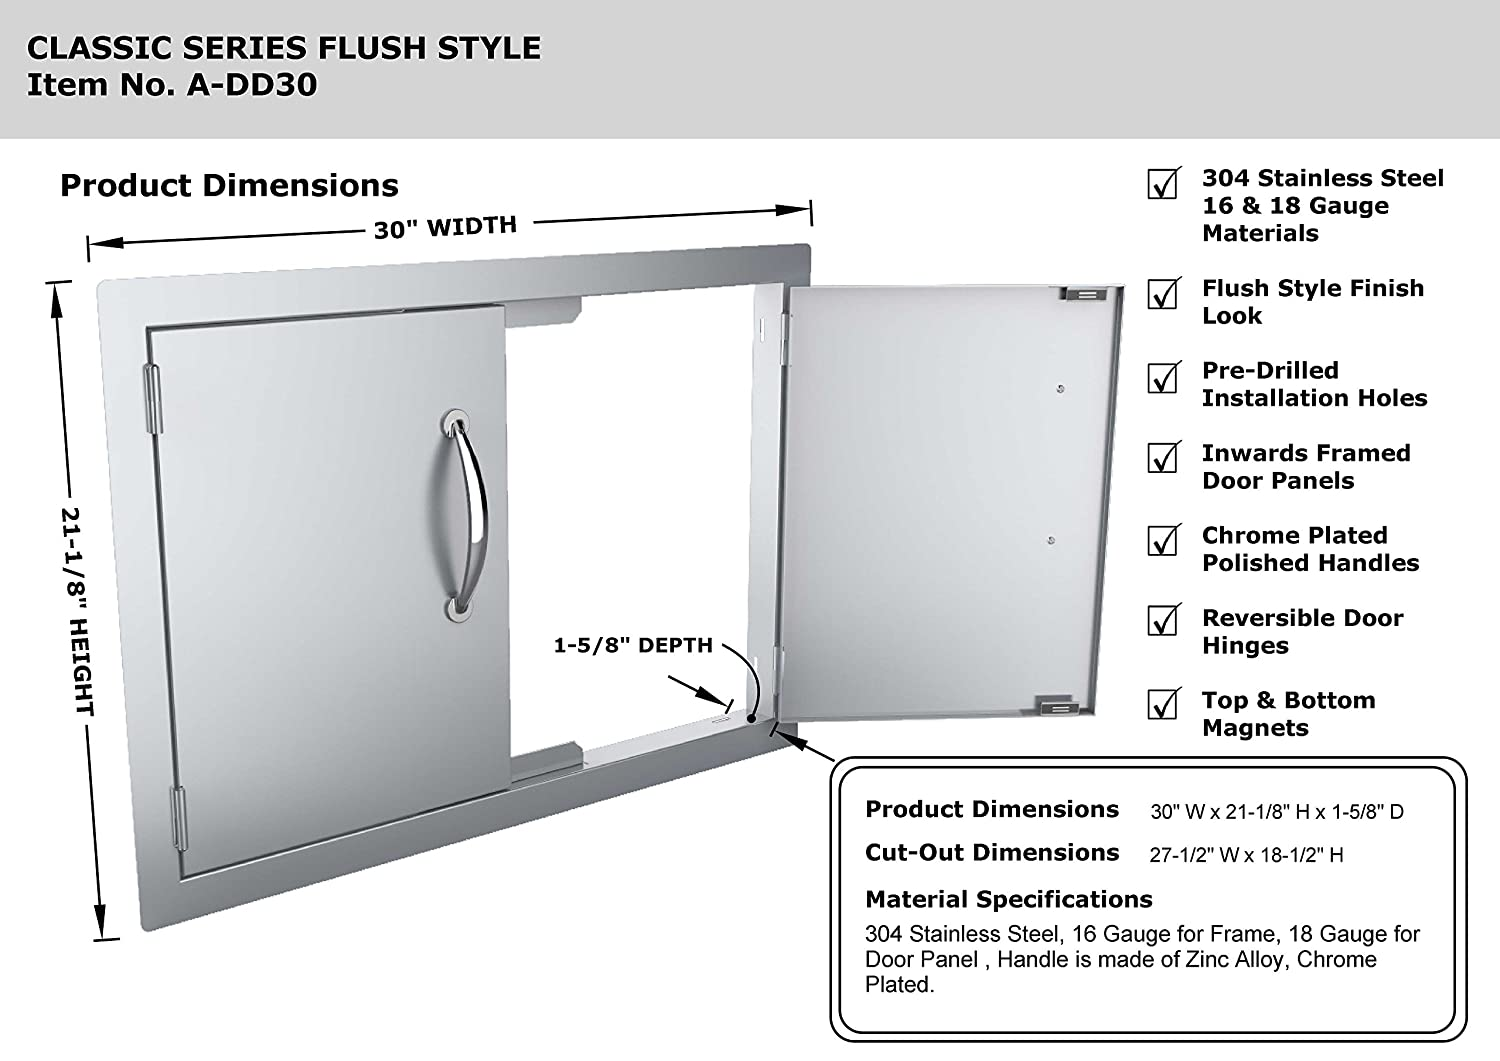 Sunstone A Dd30 30 Inch Double Door Flush Mount Sink Plumbing Diagram Group Picture Image By Tag Outdoor Kitchen Access Doors Garden